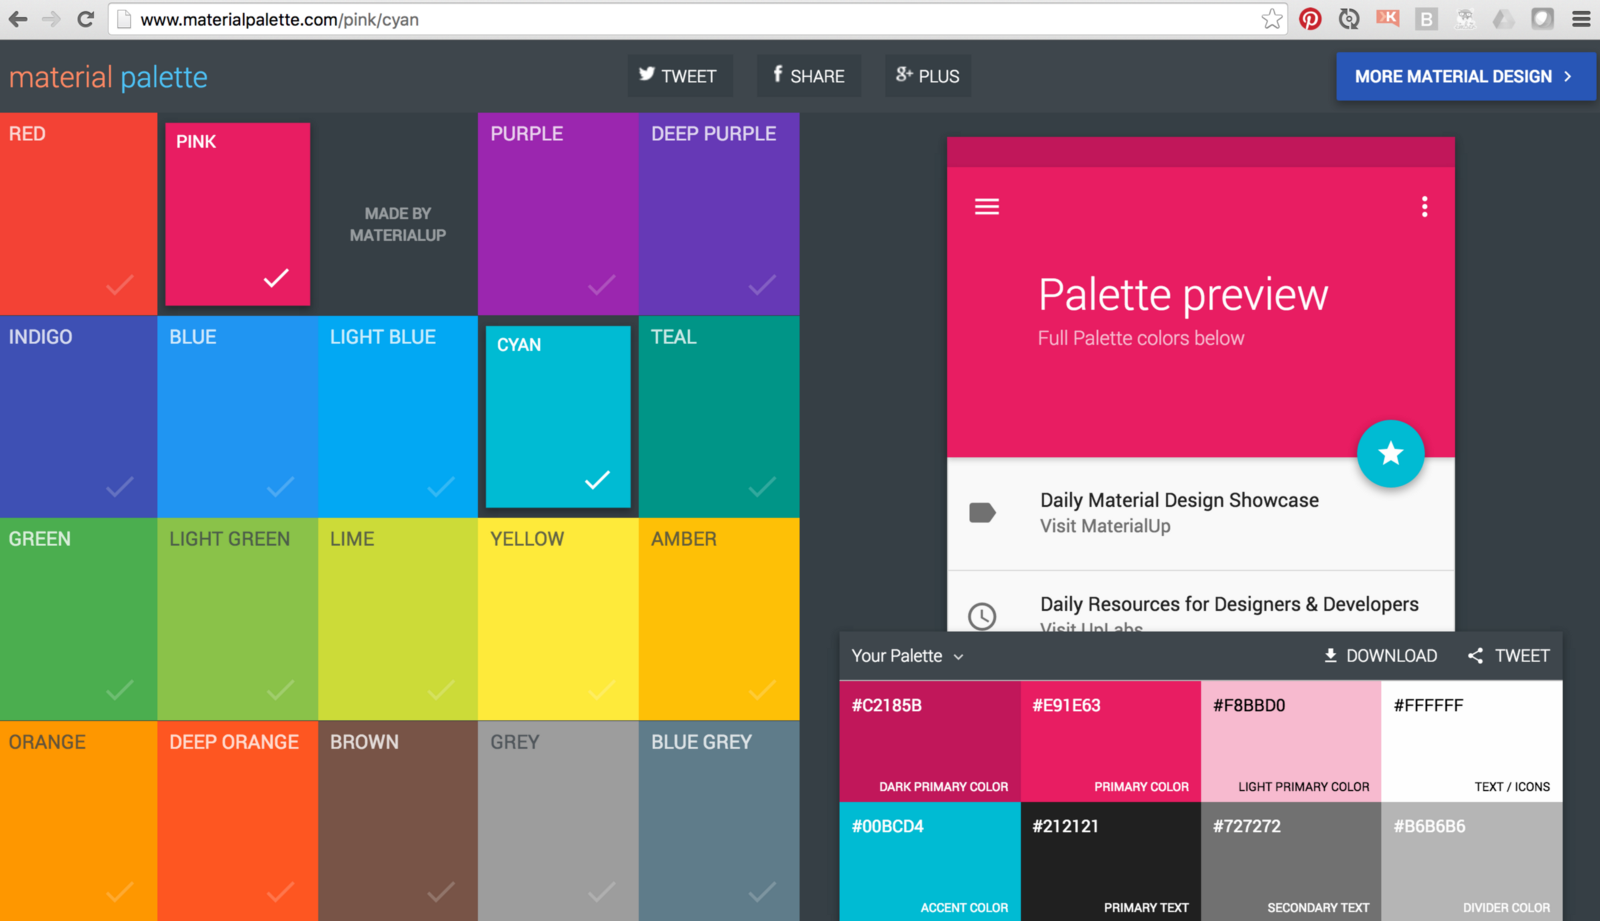 Adding a Material Design Color Palette to your Angular Material 2 App